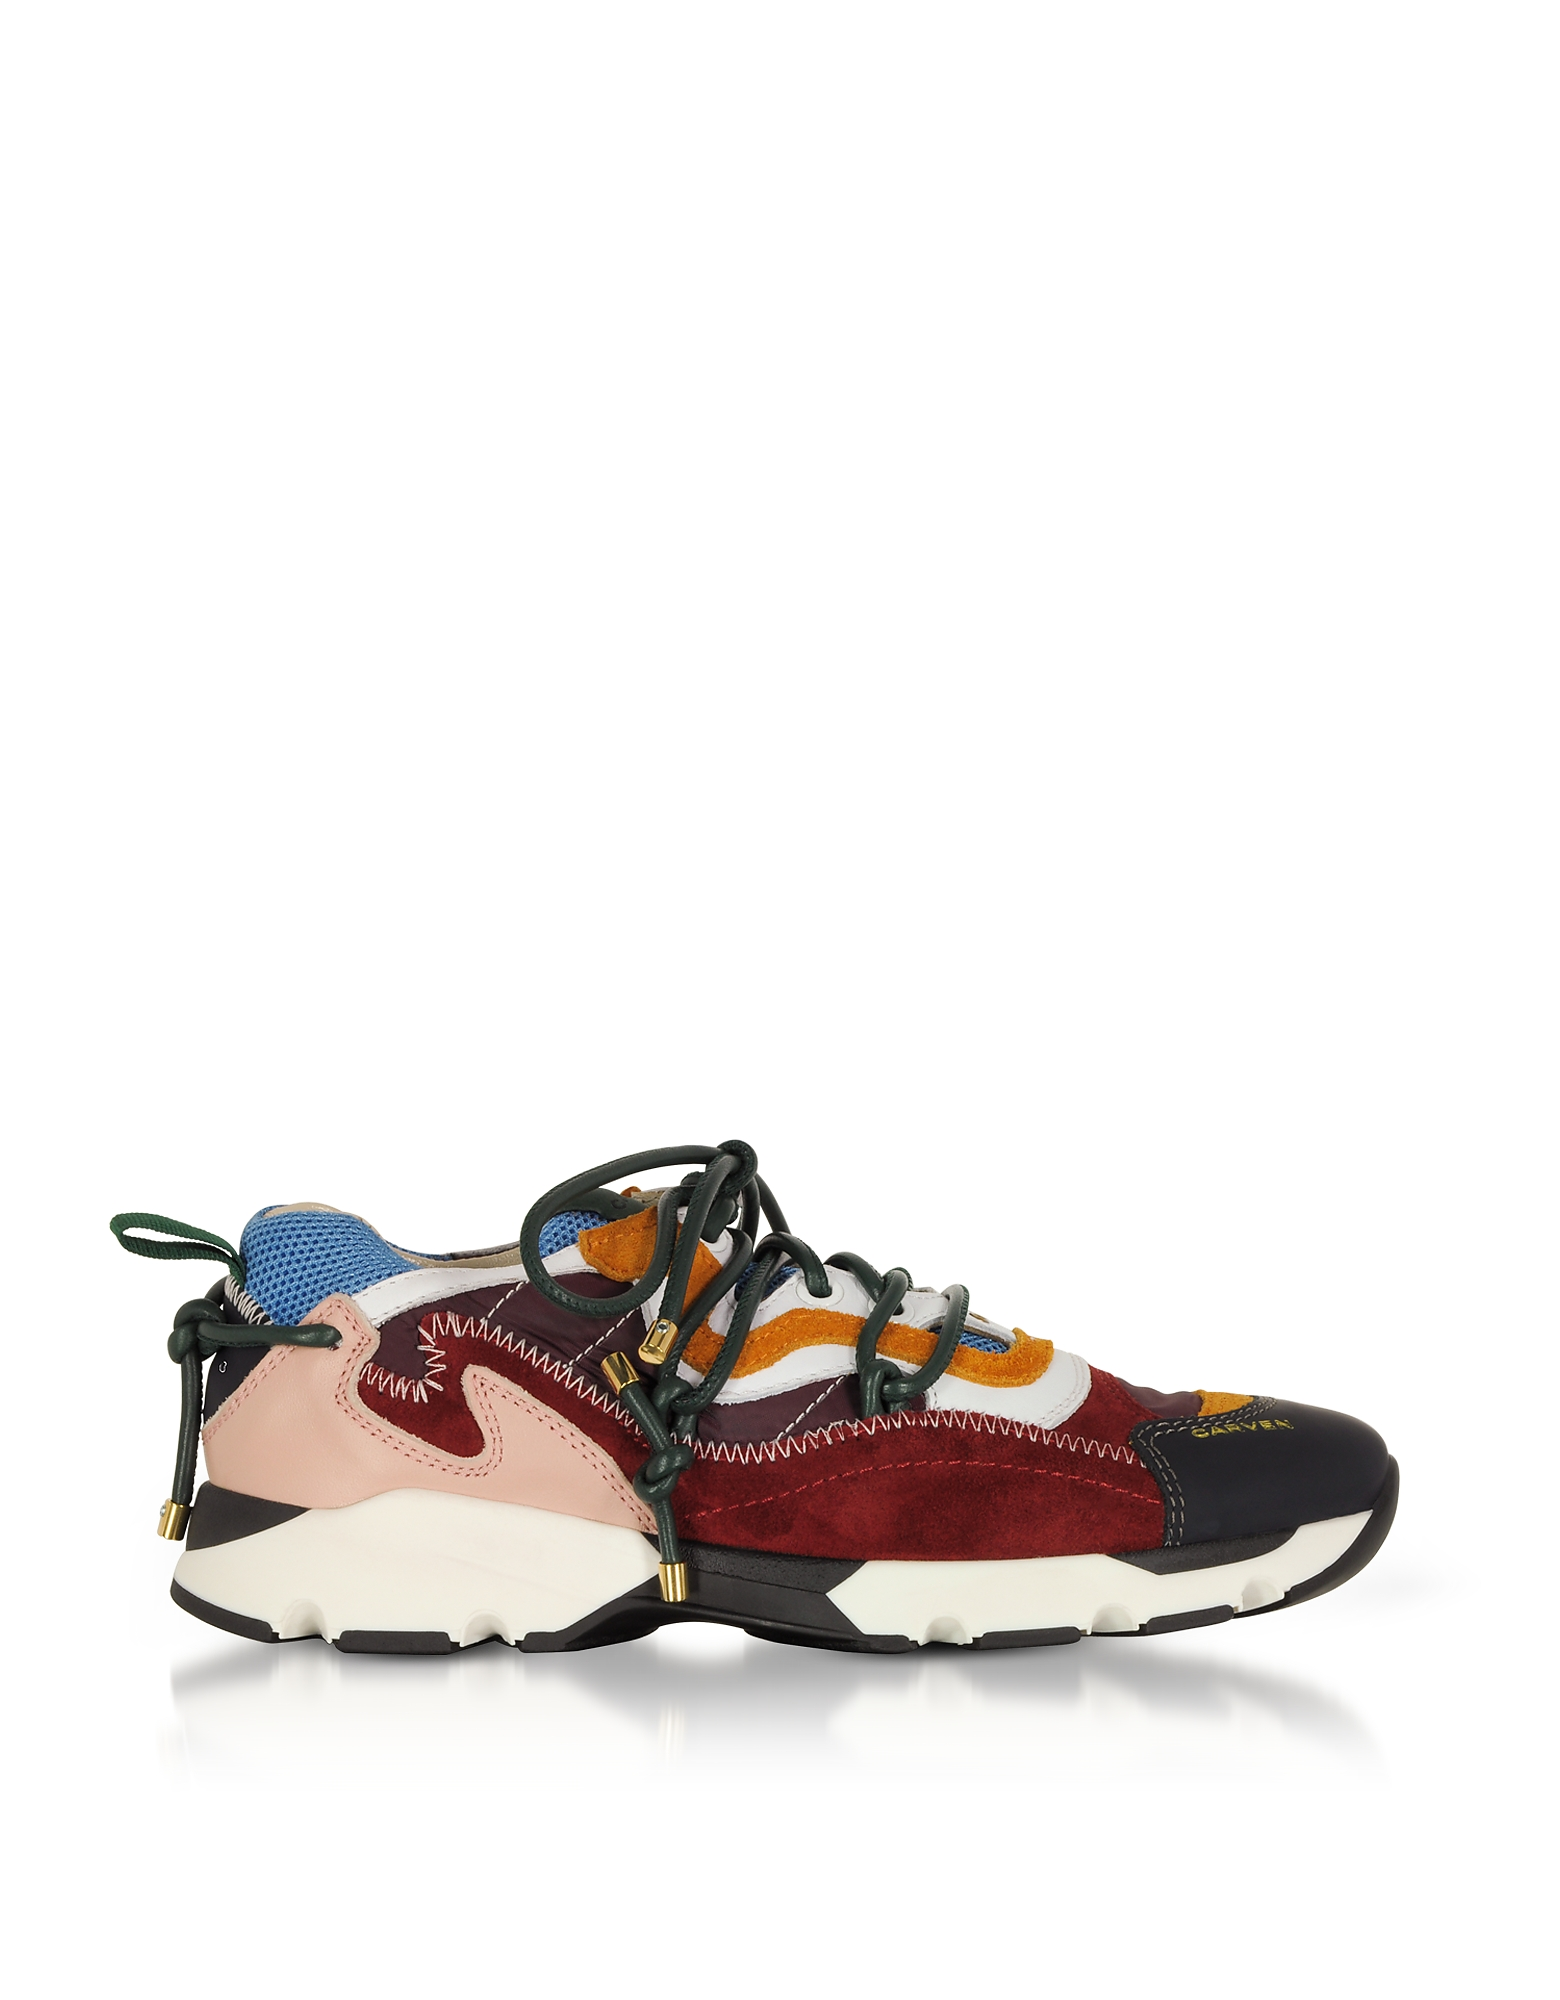 Nayeli Running Sneakers in Pelle e Suede Color Block